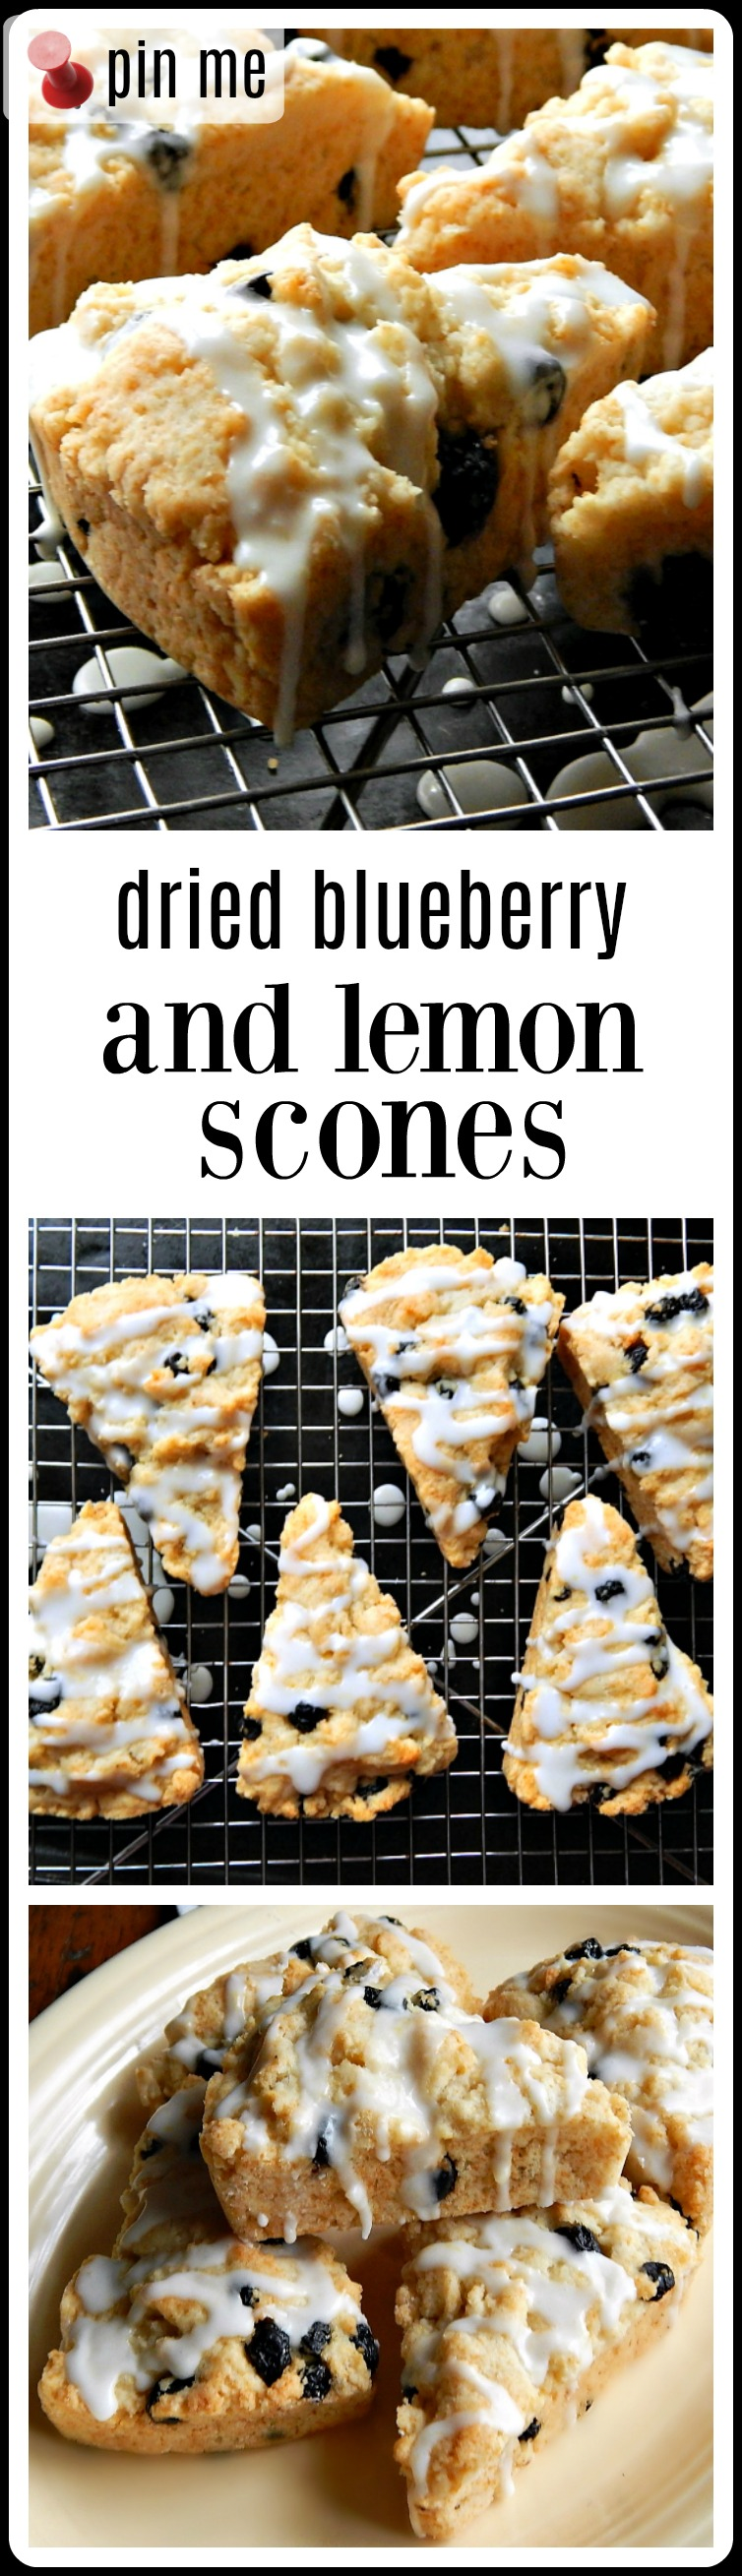 Dried Blueberry Lemon Scones are tender and moist and just a bit crumbly. Very scone-like. They're loaded with blueberries. The lemony icing is insane! #DriedBlueberryScones #BlueberryScones